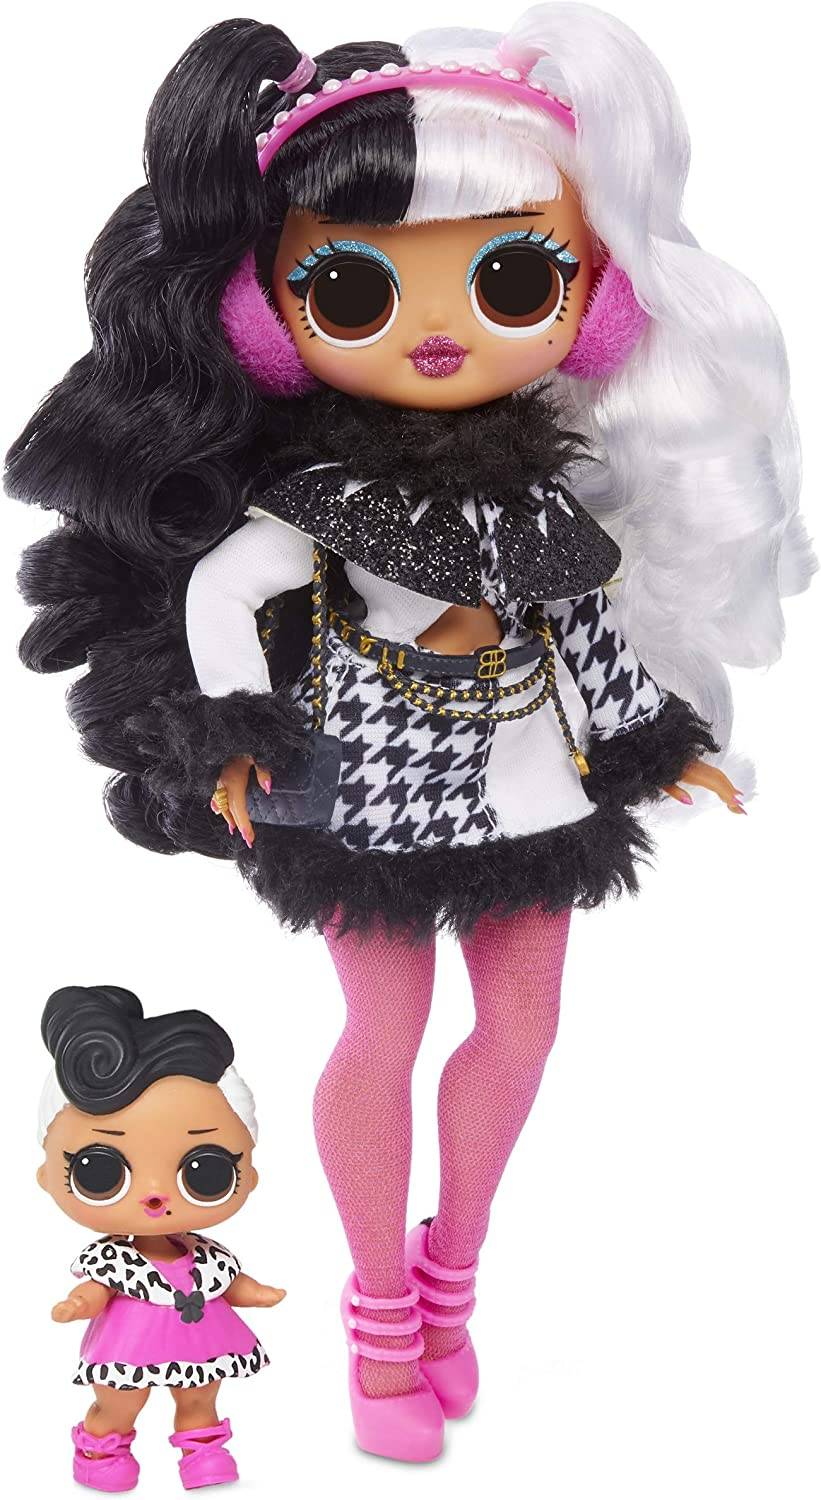 L.O.L. Surprise!-L.O.L. ¡Sorpresa O.M.G. Winter Disco Dollie-Muñeca y Hermana, Multicolor (MGA Entertainment UK LTD 561798)